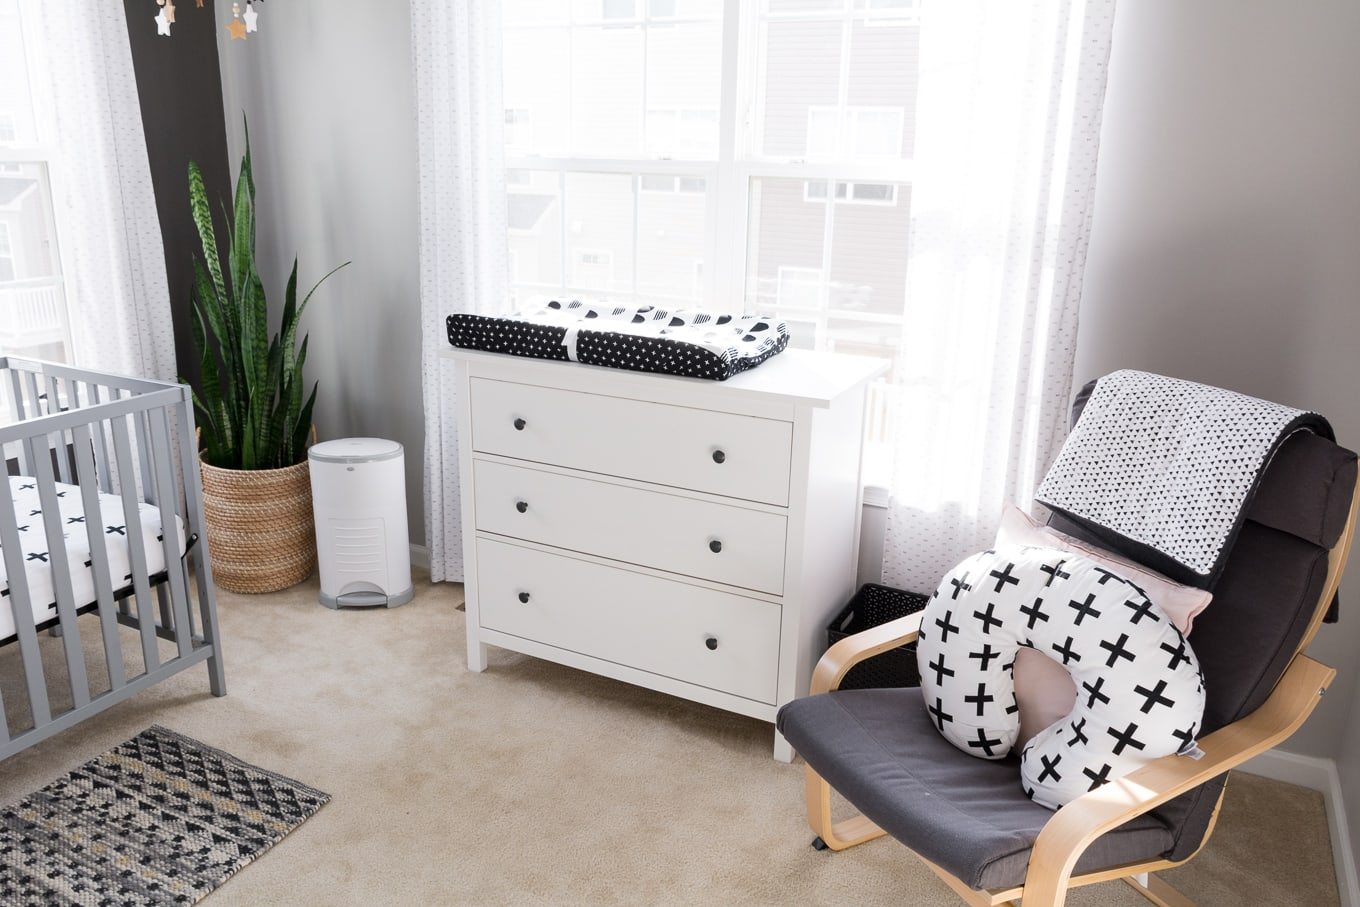 A Modern and Neutral Nursery // Behr Silver City, Behr Dark Granite // Ikea Poang in nursery // Ikea Hemnes in nursery